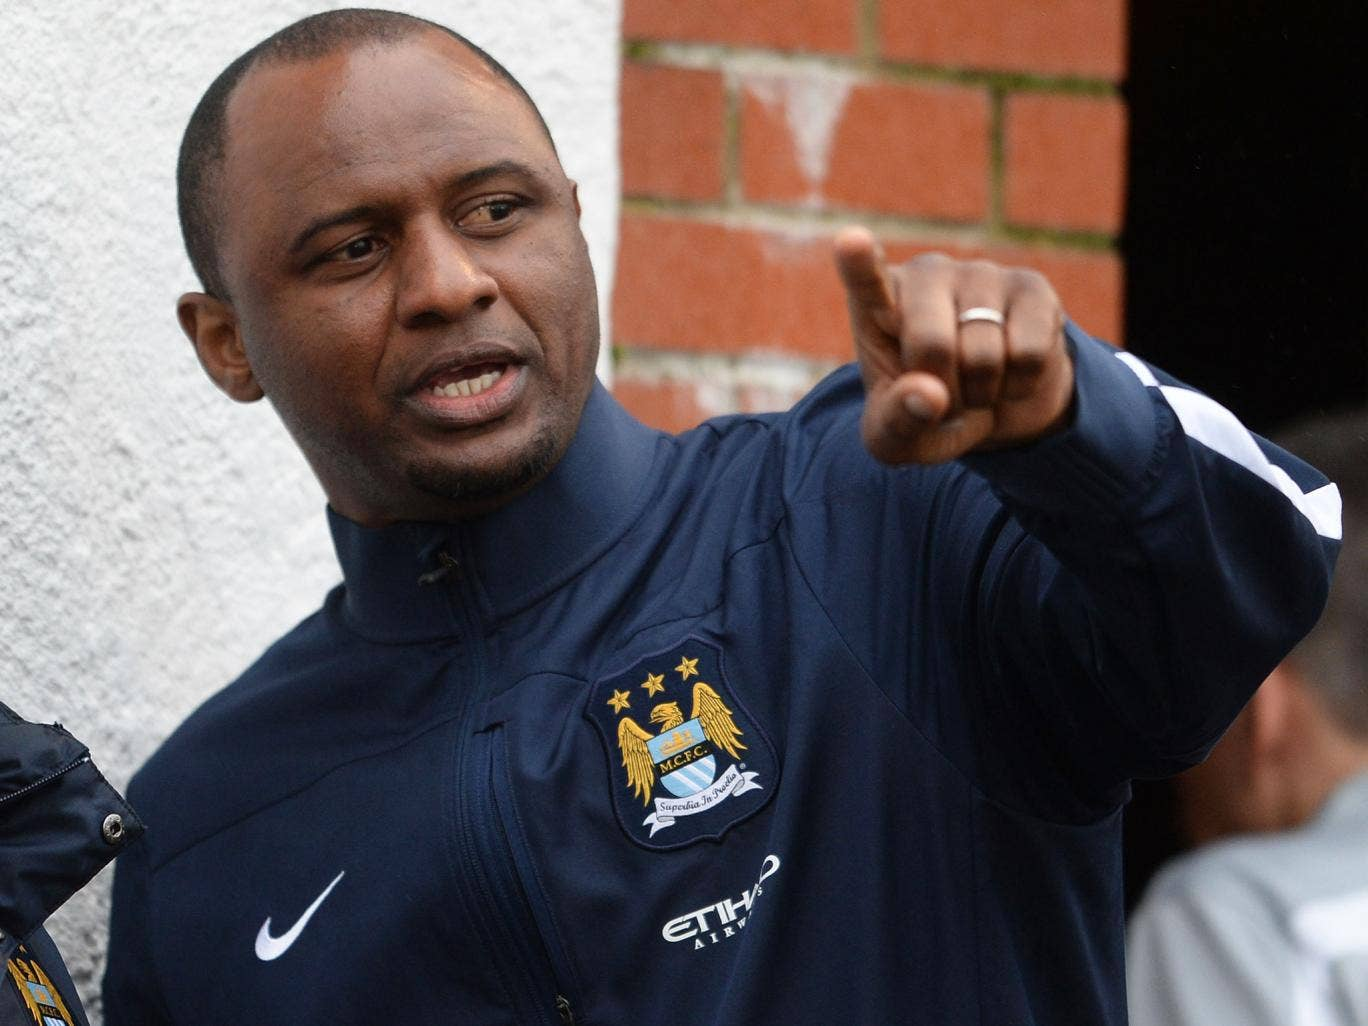 Patrick Vieira is a youth coach at Manchester City